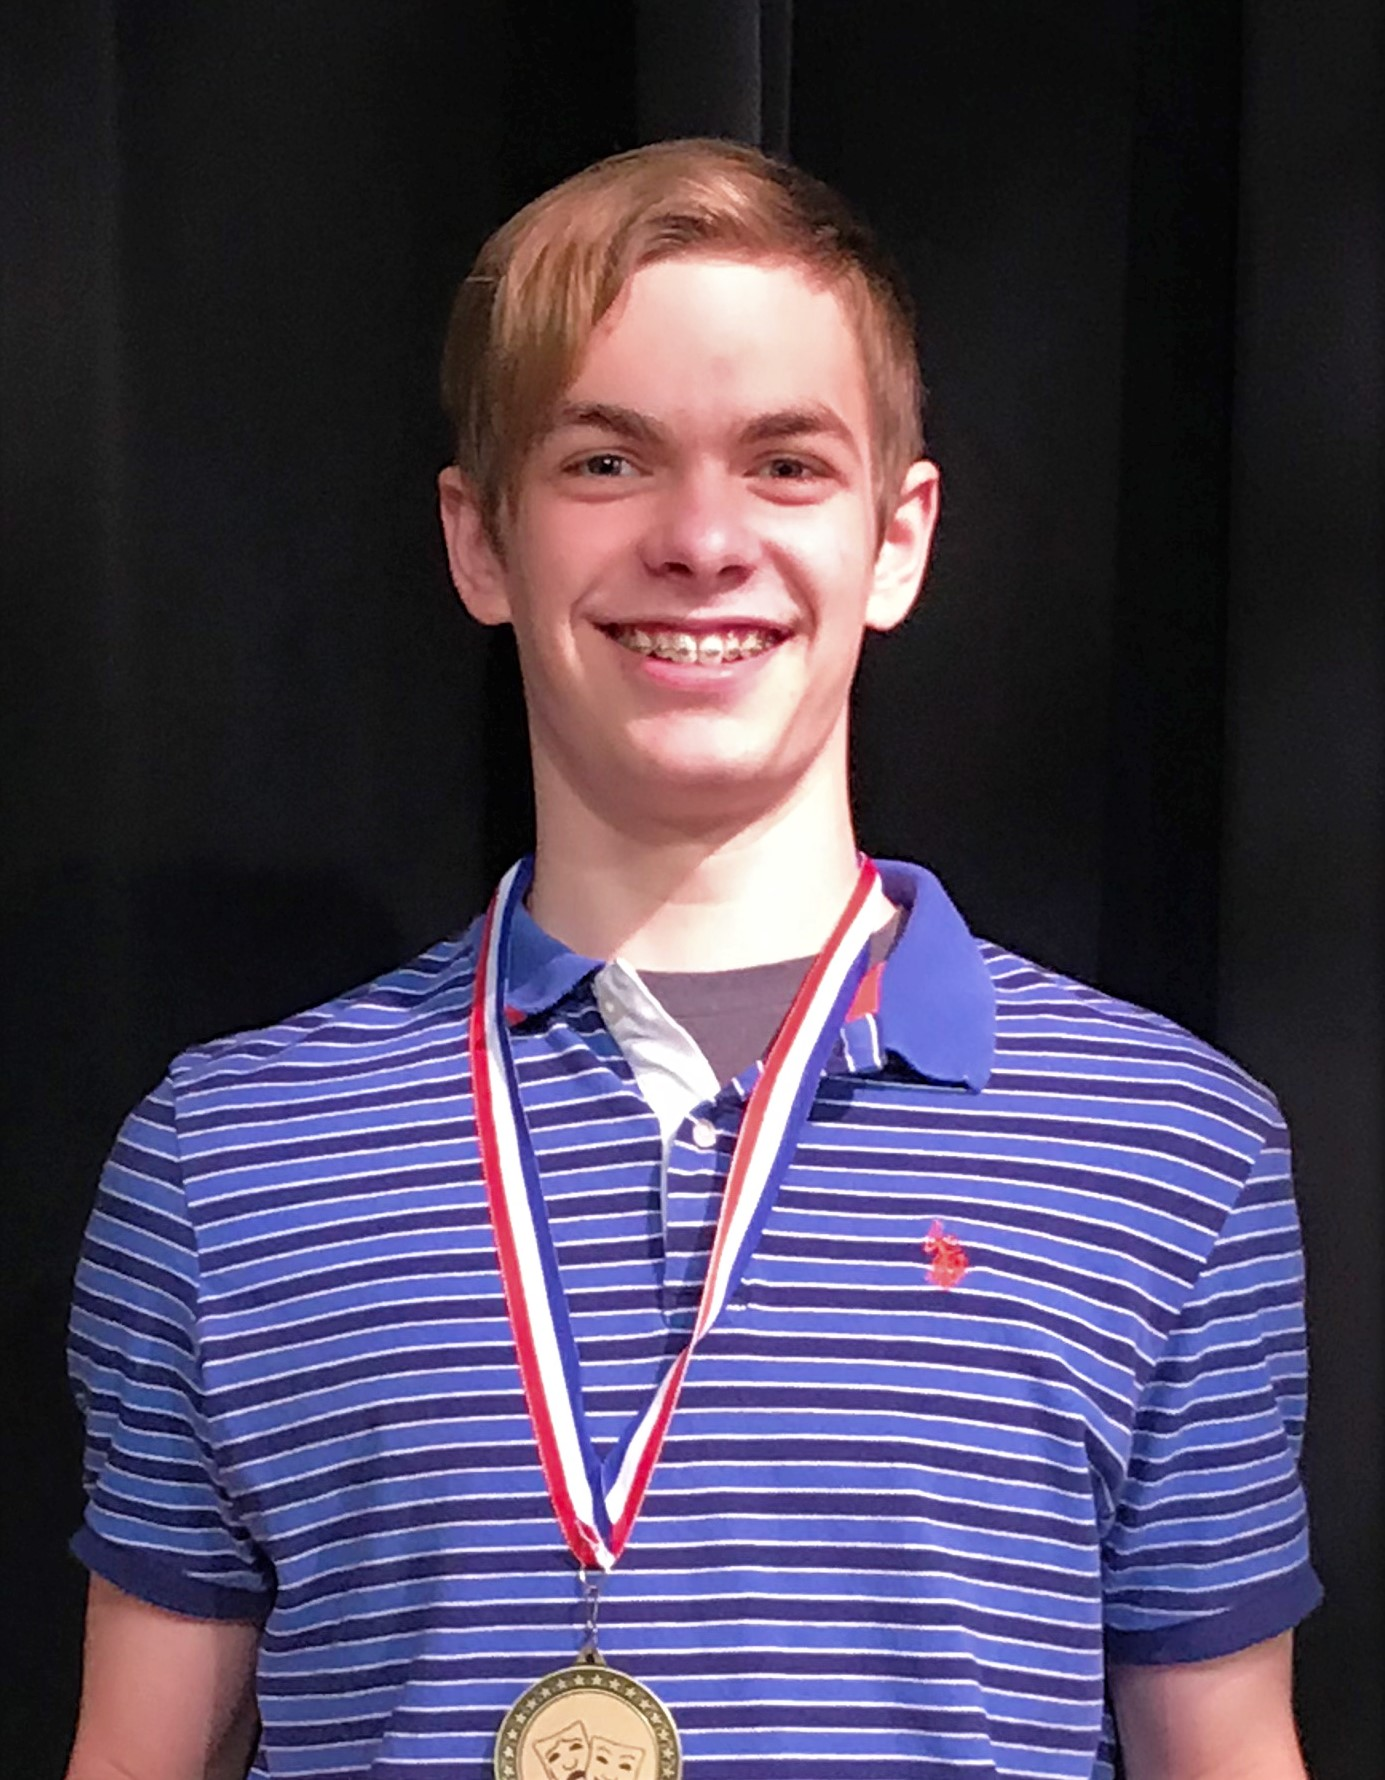 Matthew Grigoratos, 1st Place Winner, 2019 Shakespeare Competition, KC Branch